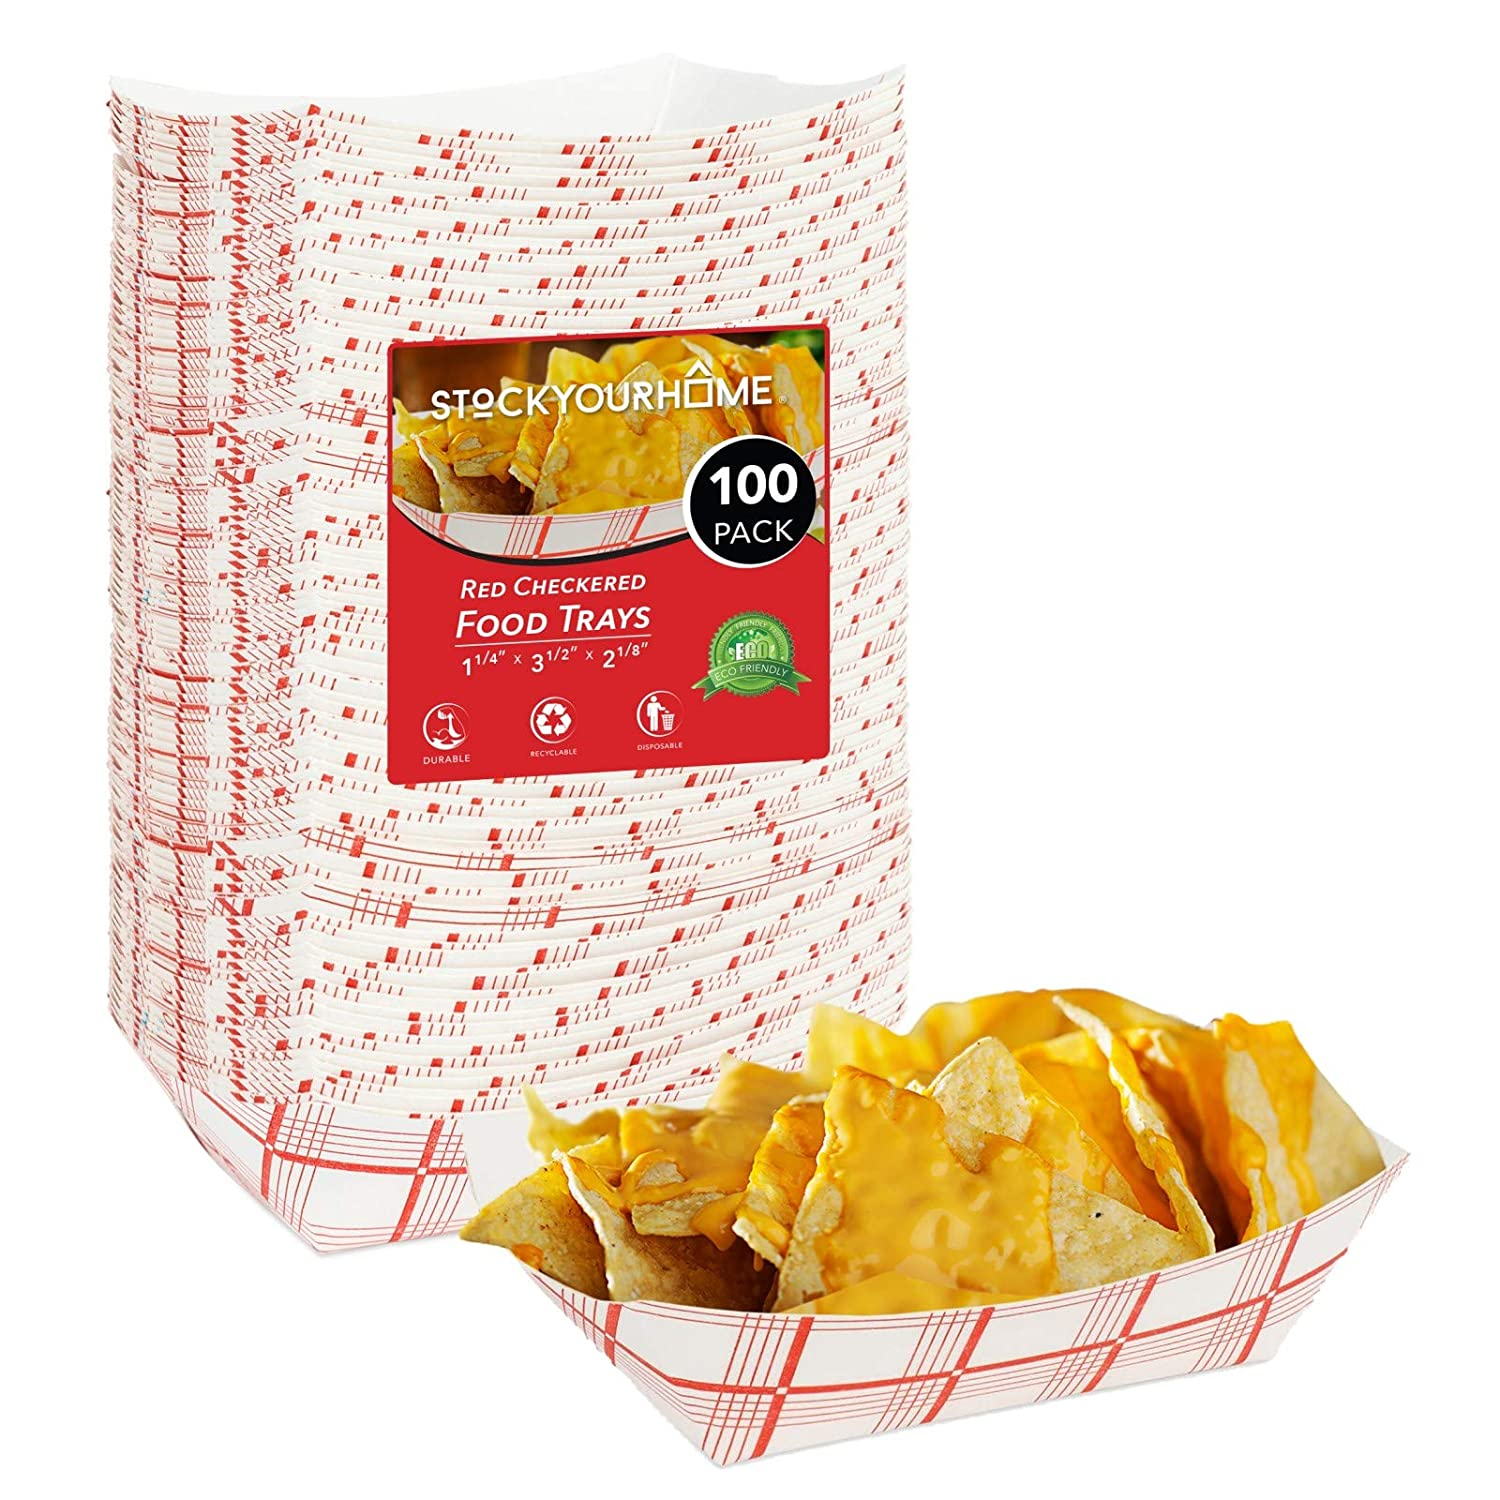 Paper Food Boats (100 Pack) Disposable Red and White Checkered Paper Food Trays - Eco Friendly Red Paper Food Trays 0.5 Lb – Serving Boats for Concession Food and Condiments, Mini Food Tray 3.75